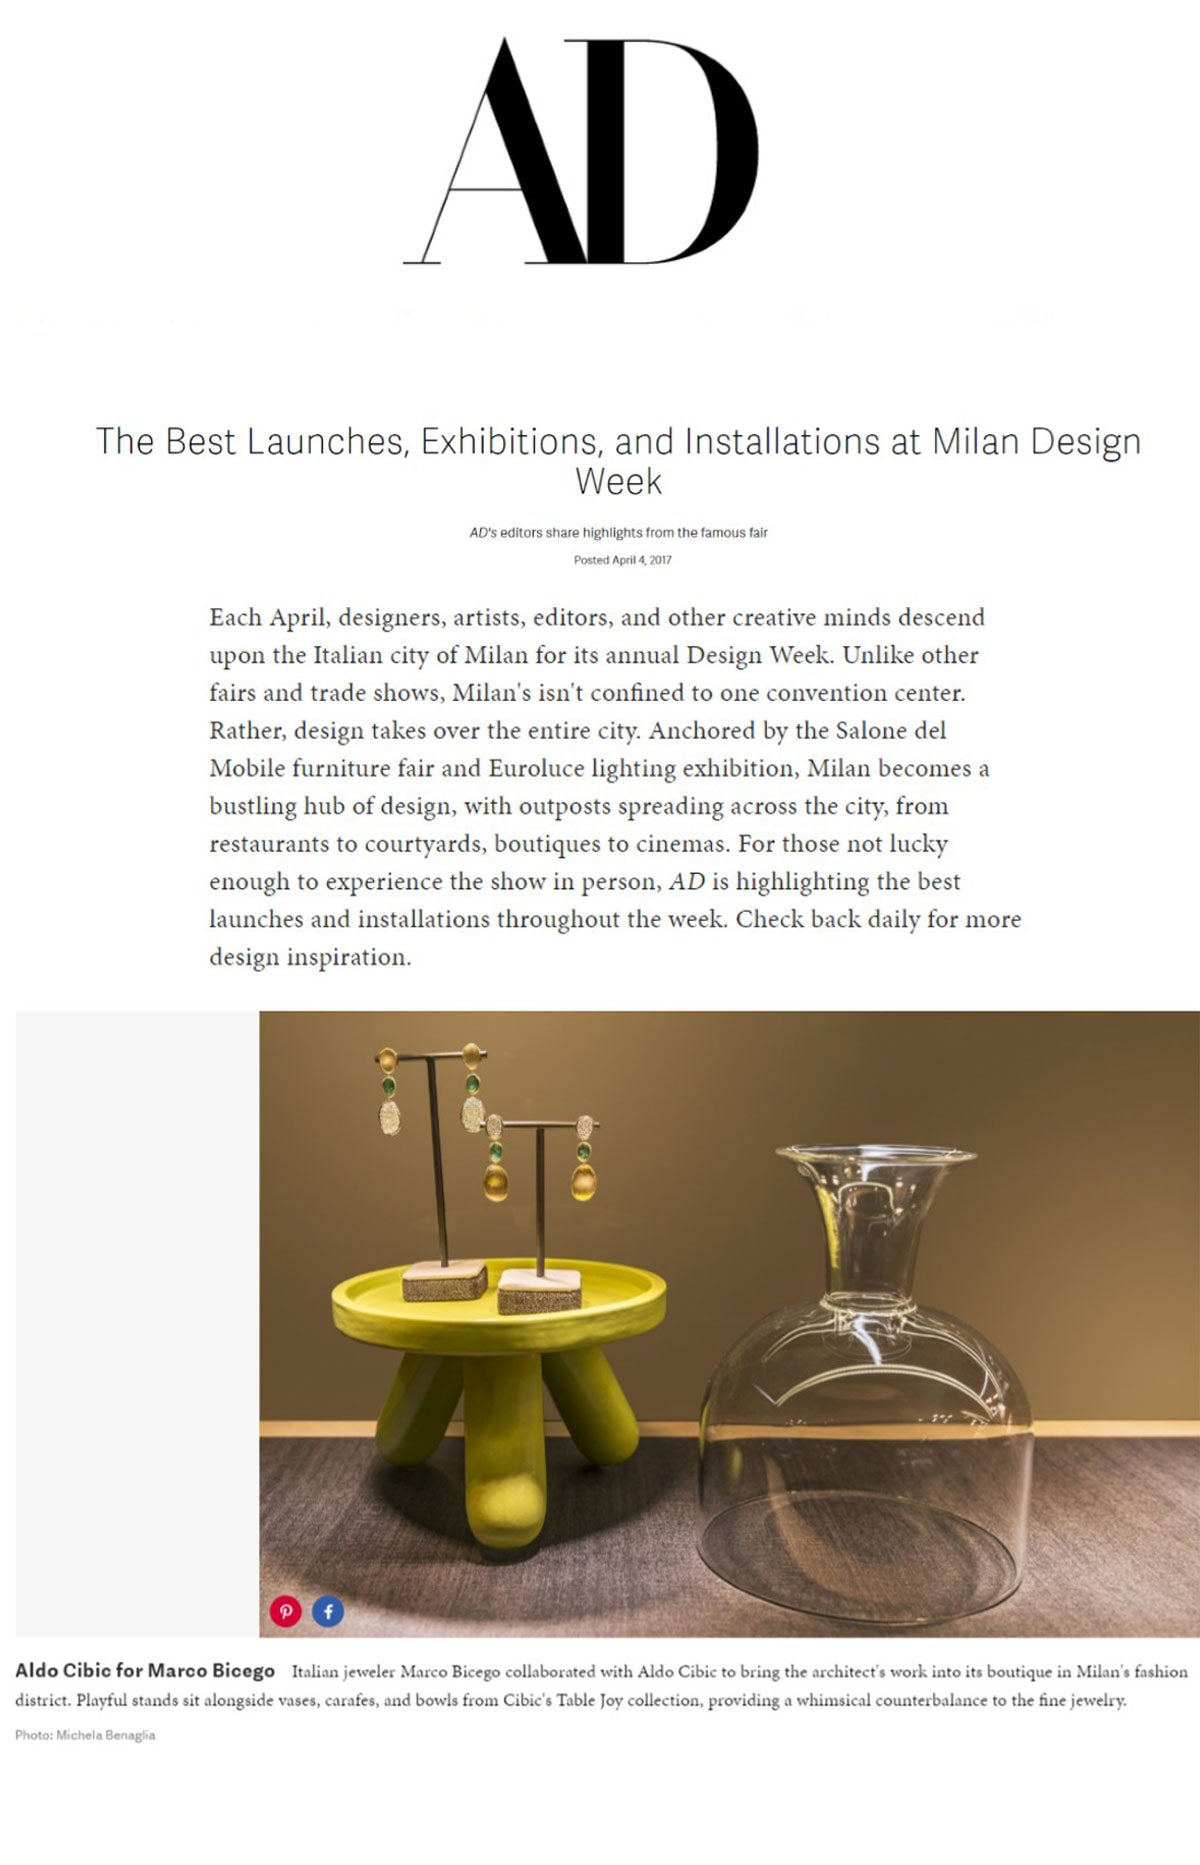 Marco Bicego Unico Earrings Featured with Aldo Cipic on Architecural Digest.com